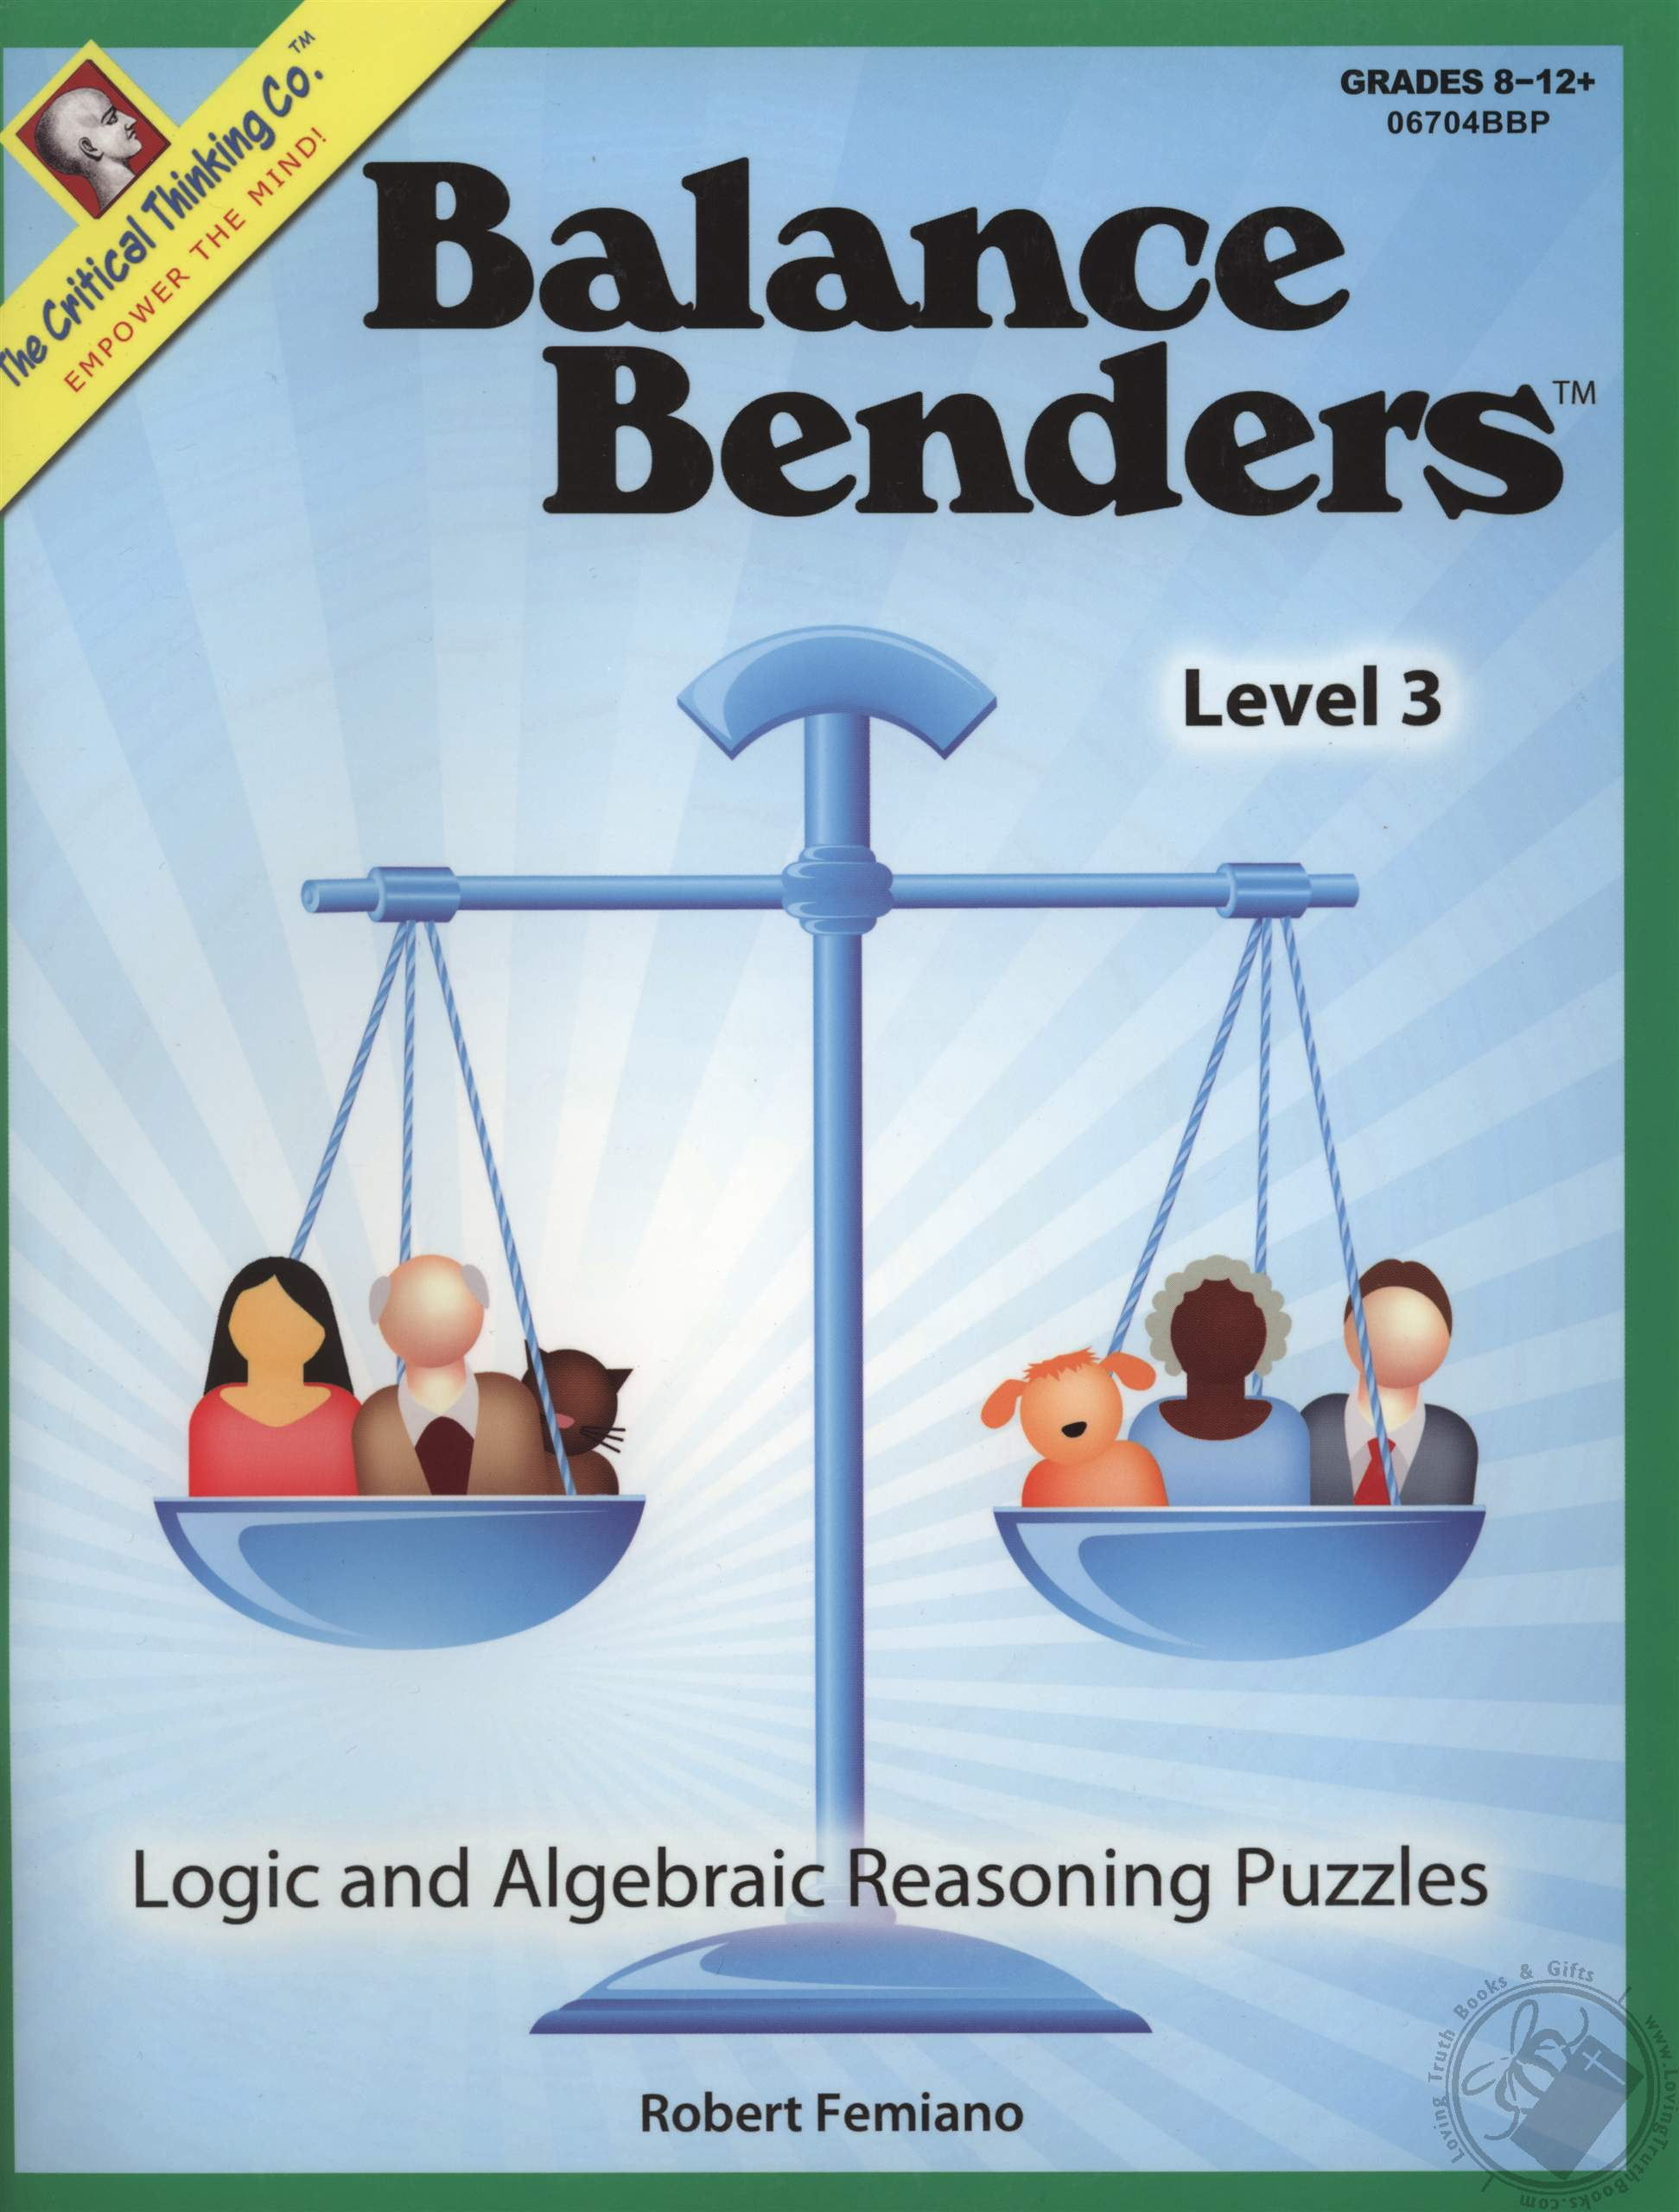 Balance Benders Level 3 Logic And Algebraic Reasoning